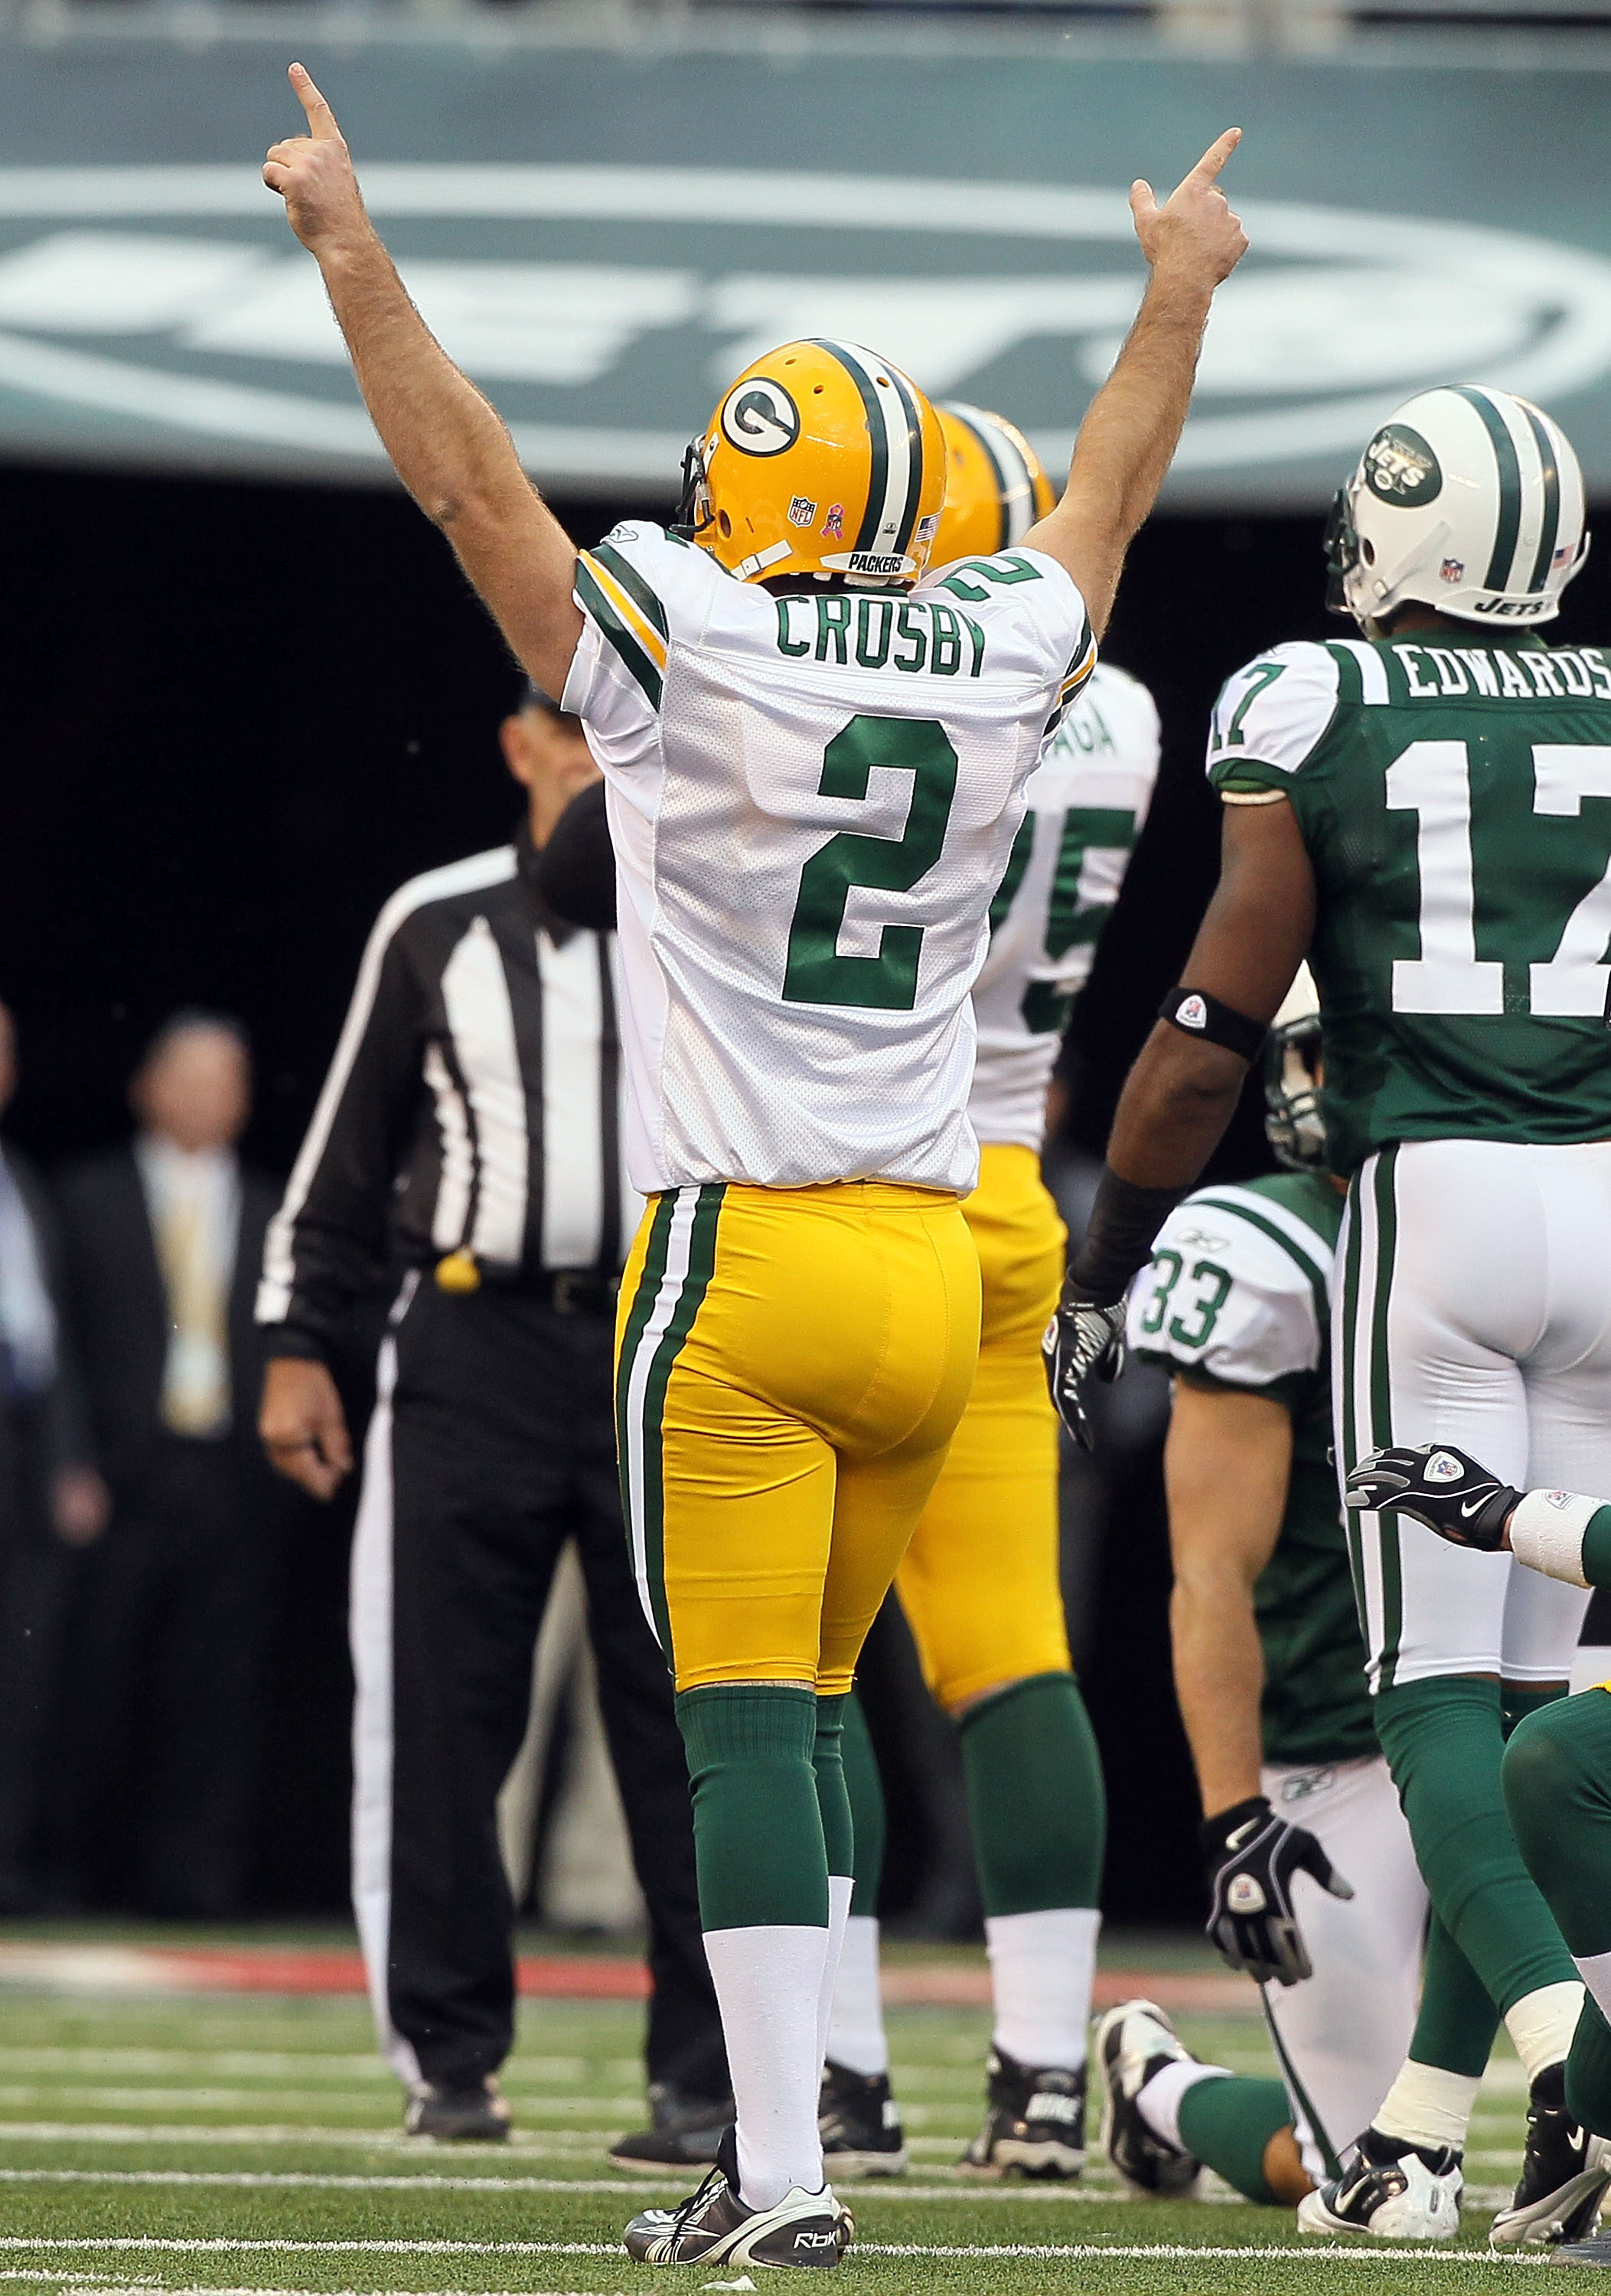 EAST RUTHERFORD, NJ - OCTOBER 31:  Mason Crosby #2 of the Green Bay Packers celebrates his field goal late in the fourth quarter that gave his team a 9-0 lead against the New York Jets on October 31, 2010 at the New Meadowlands Stadium in East Rutherford,